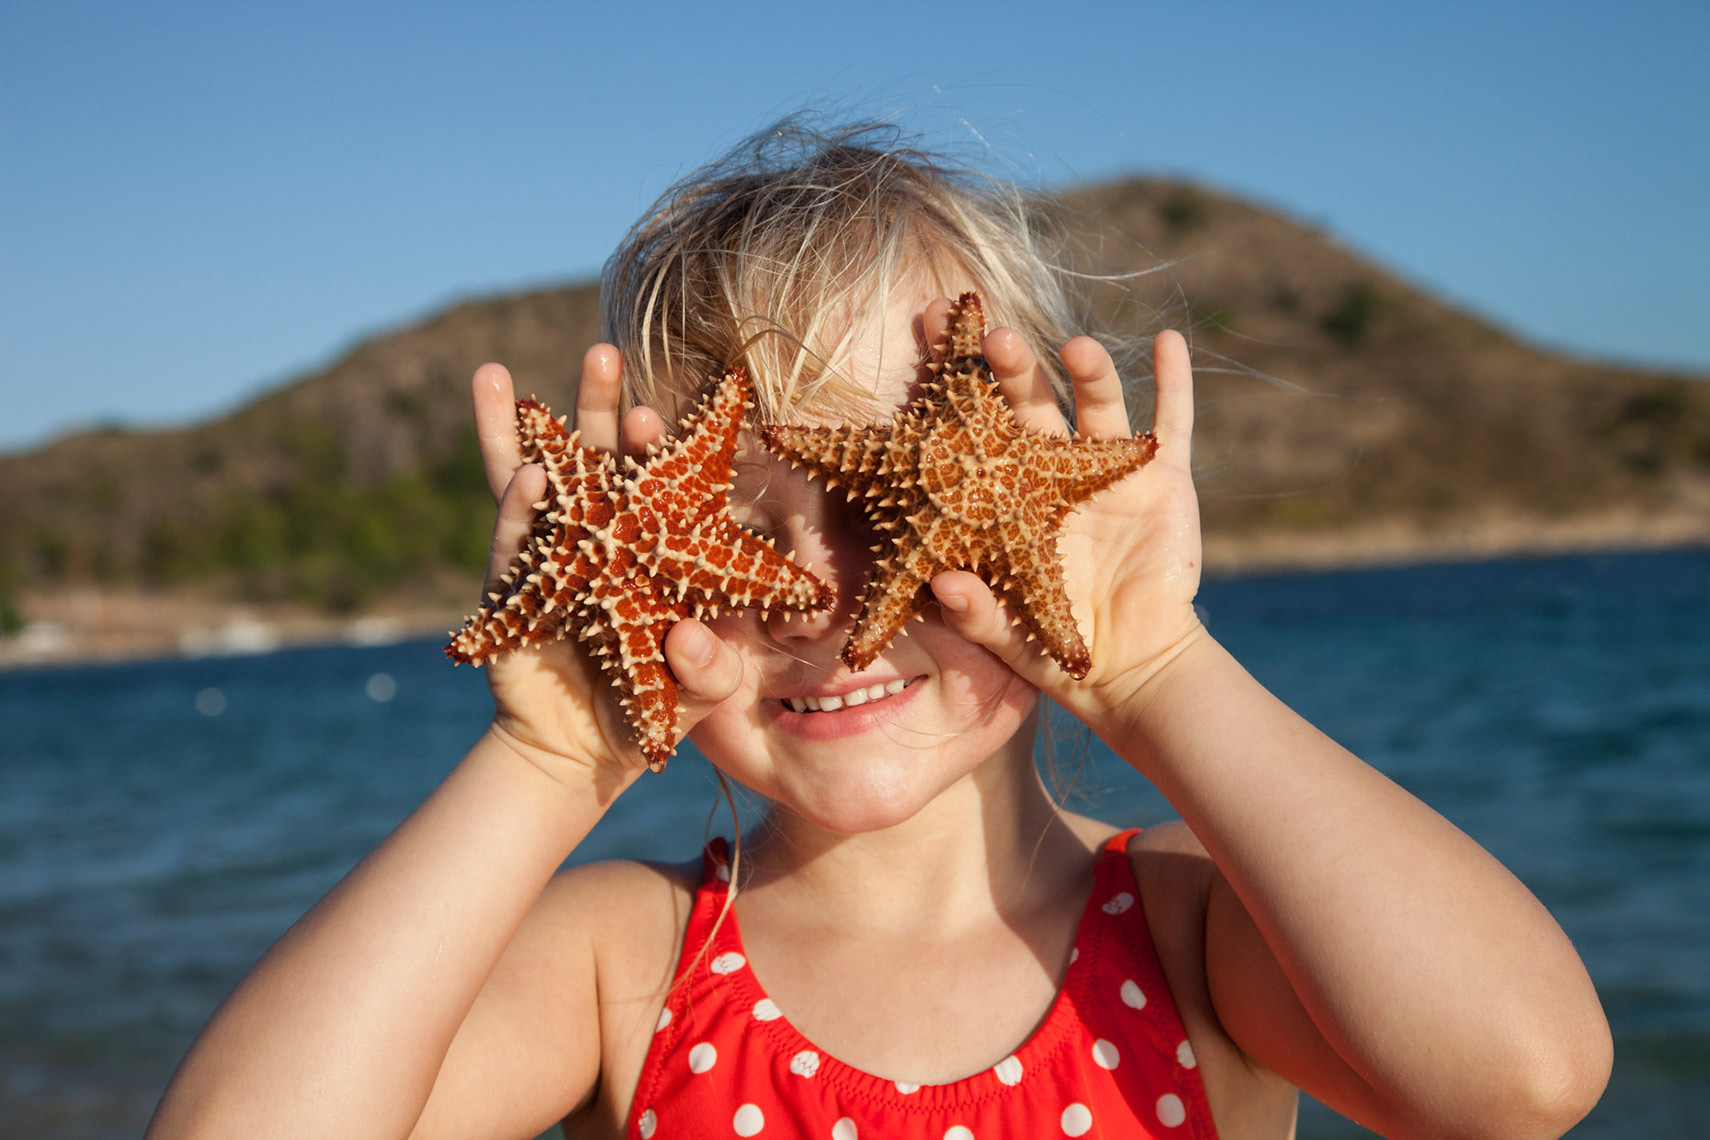 A-YOUNG-GIRL-HOLDING-STARFISH-OVER-HER-EYES